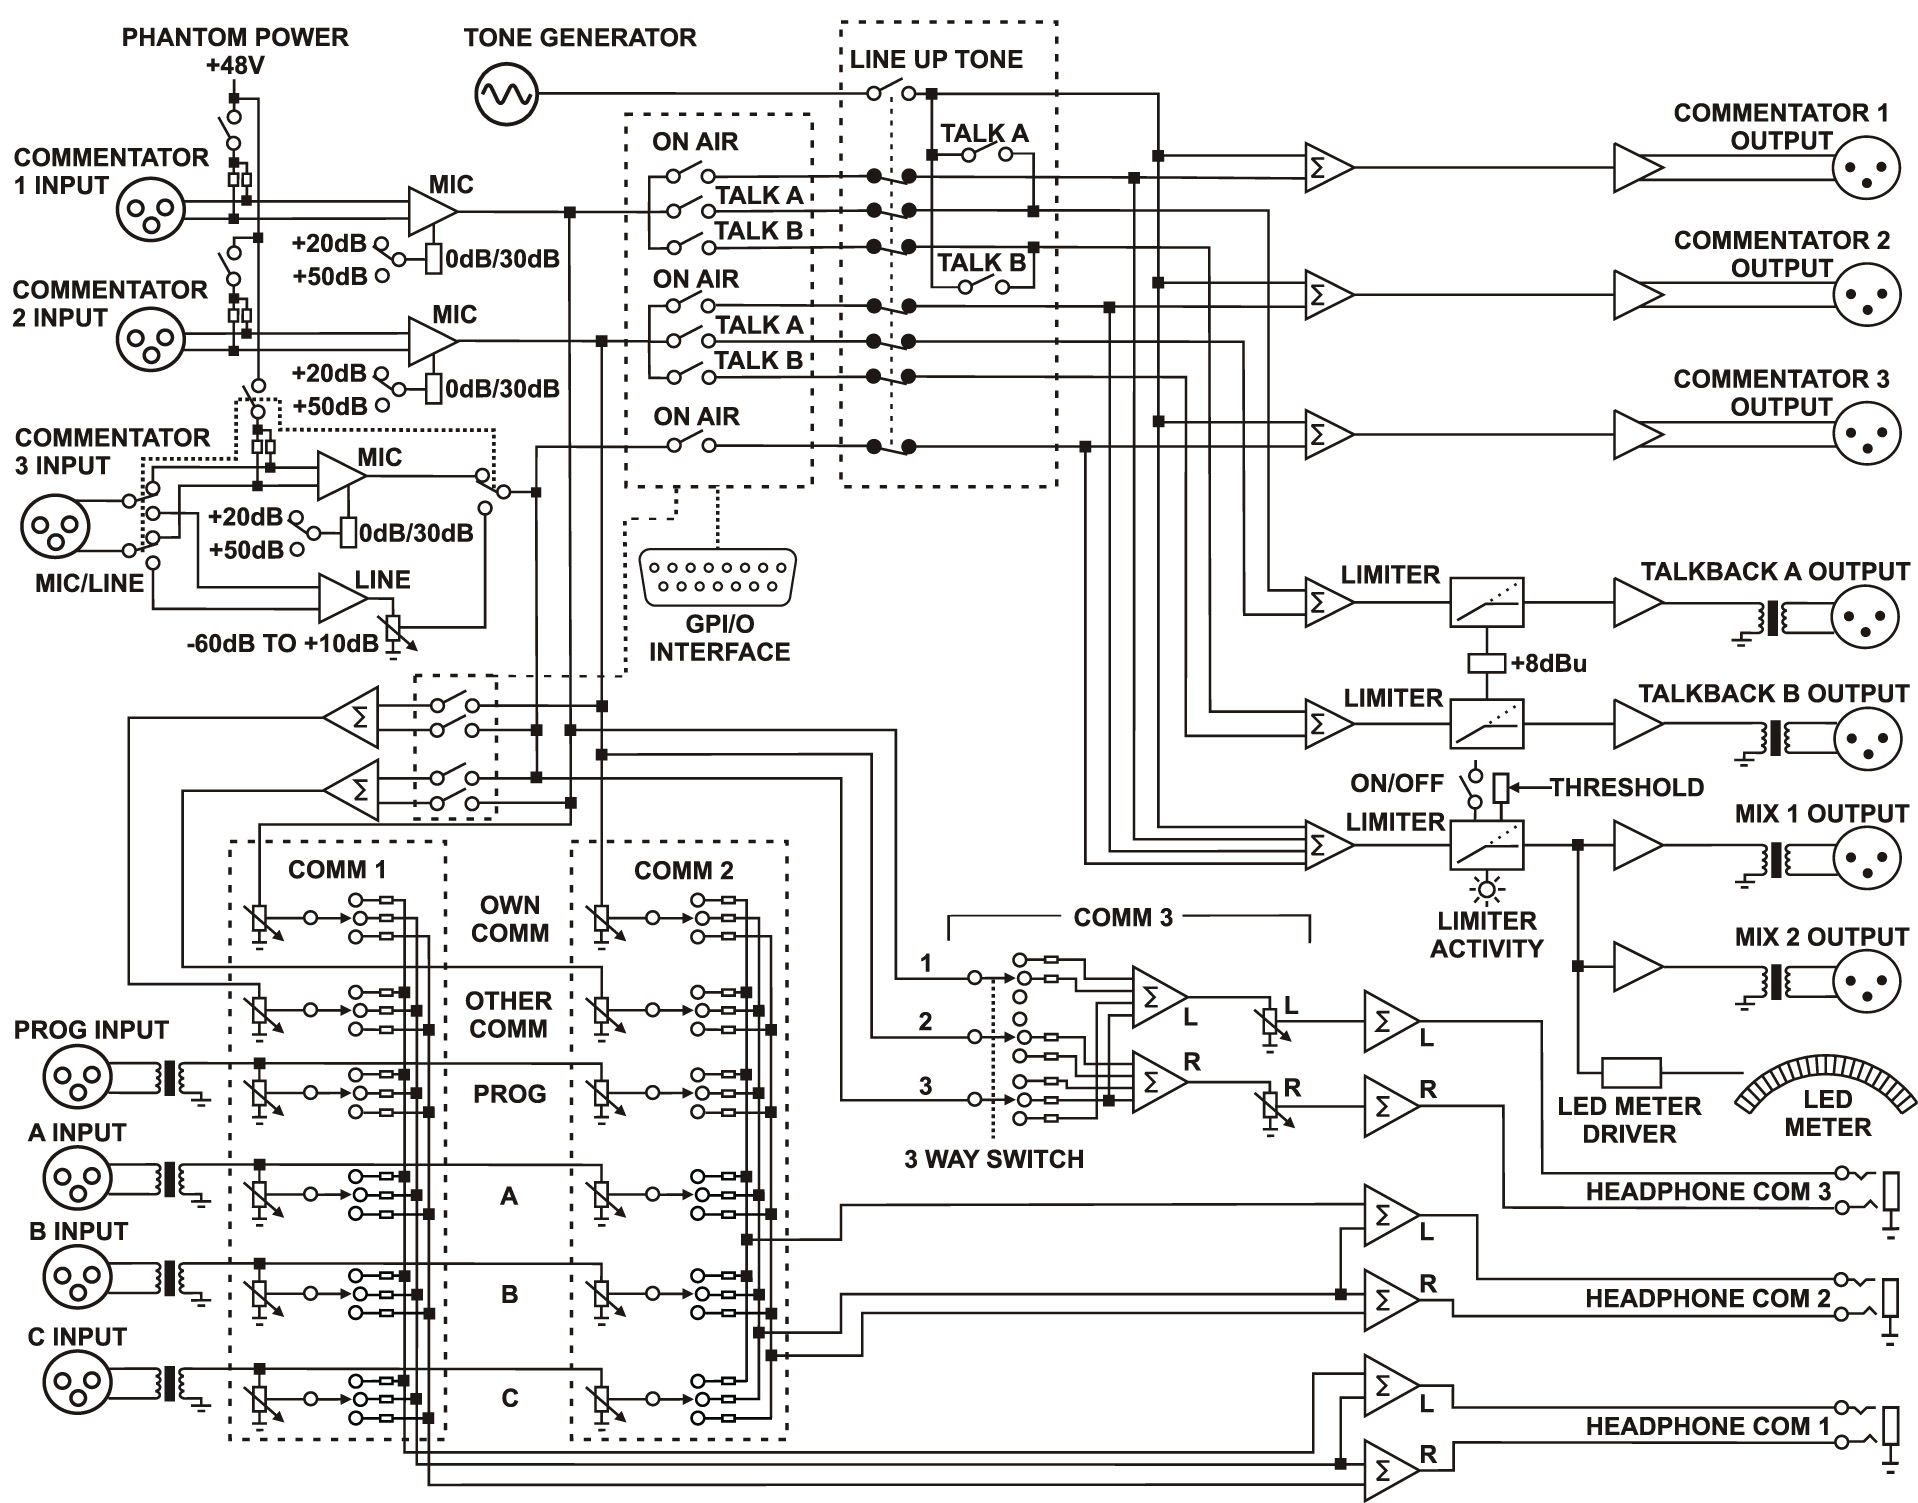 Mixer Console Wiring Diagram Schematics Vacuum Cleaner Diagrams Data Circuit Cb Radio